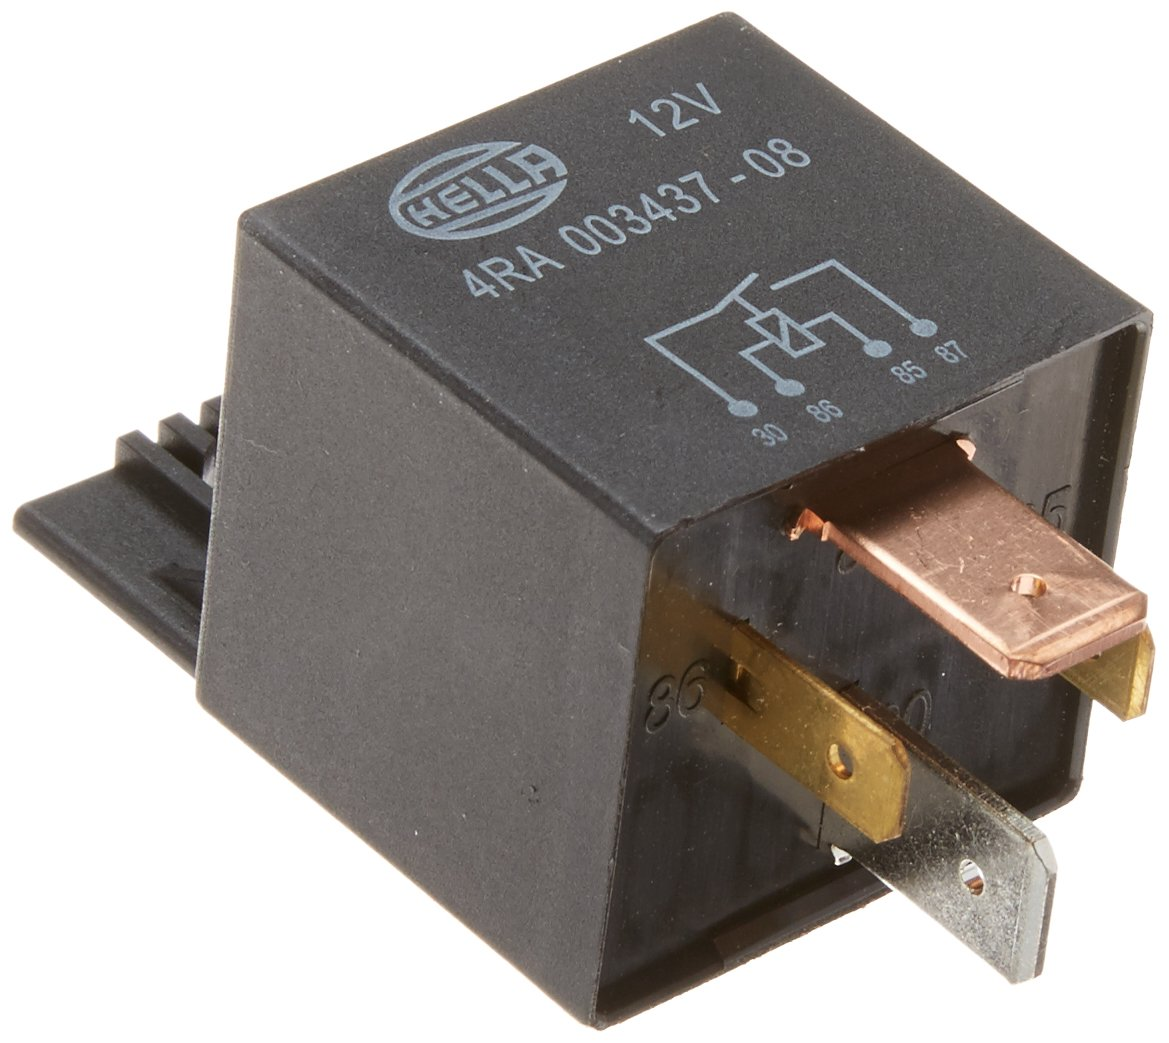 HELLA 003437081 70 Amp Heavy Duty SPST Switch with Bracket by HELLA